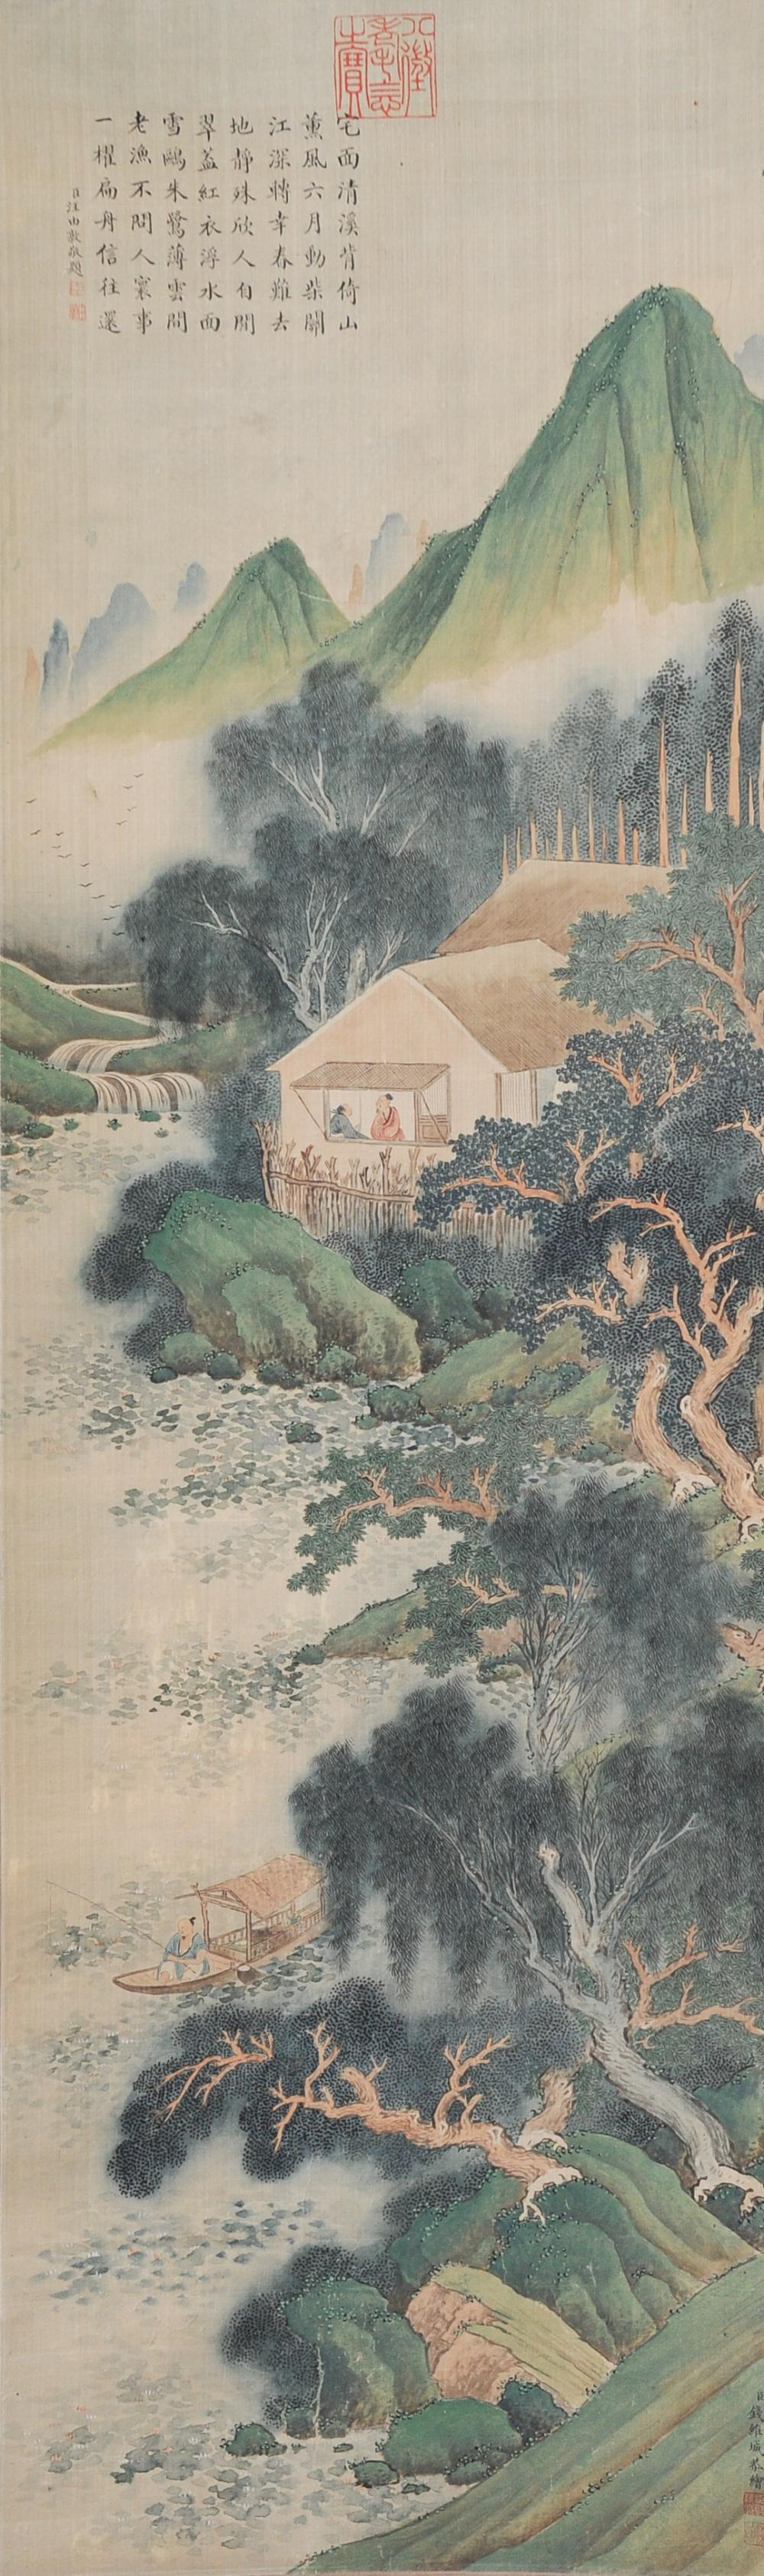 LANDSCAPE PAINTING ATTRIBUTED TO QIAN WEICHENG